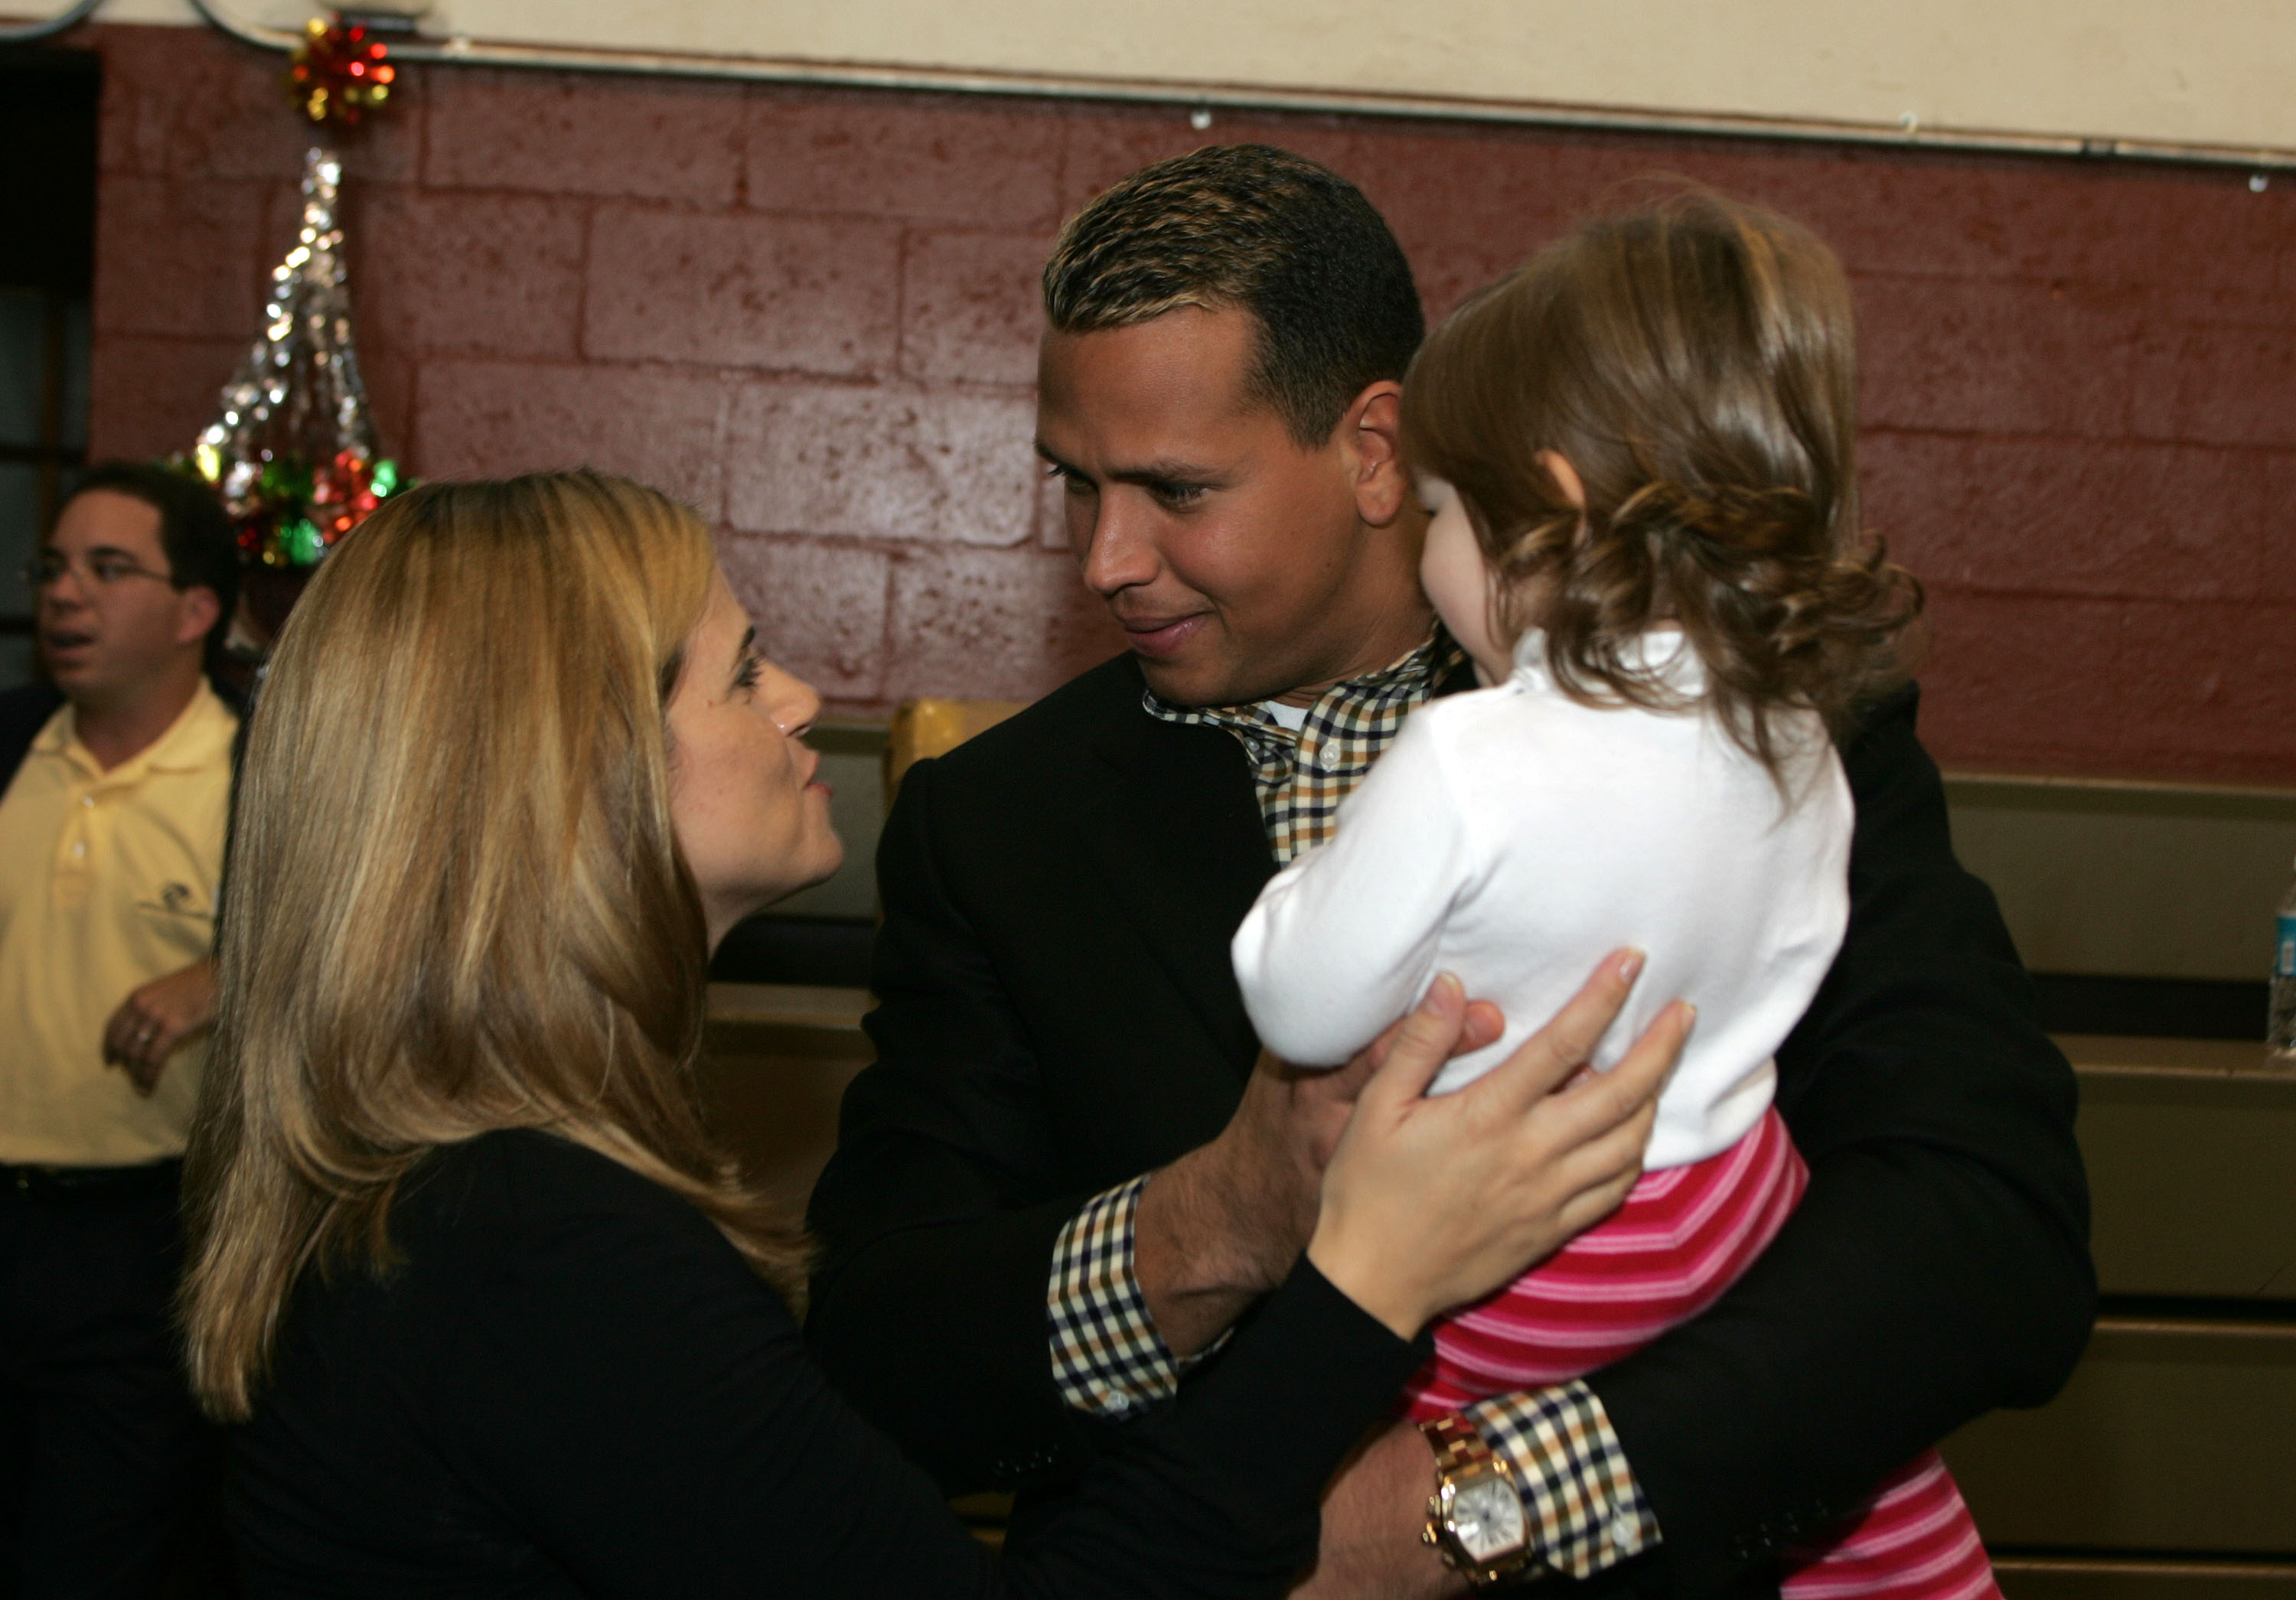 MIAMI - DECEMBER 15:  Baseball player Alex Rodriguez and wife Cynthia host a Christmas party at The Boys and Girls Clubs Of Miami on December 15, 2004 in Miami.  (Photo by Alexander Tamargo/Getty Images)